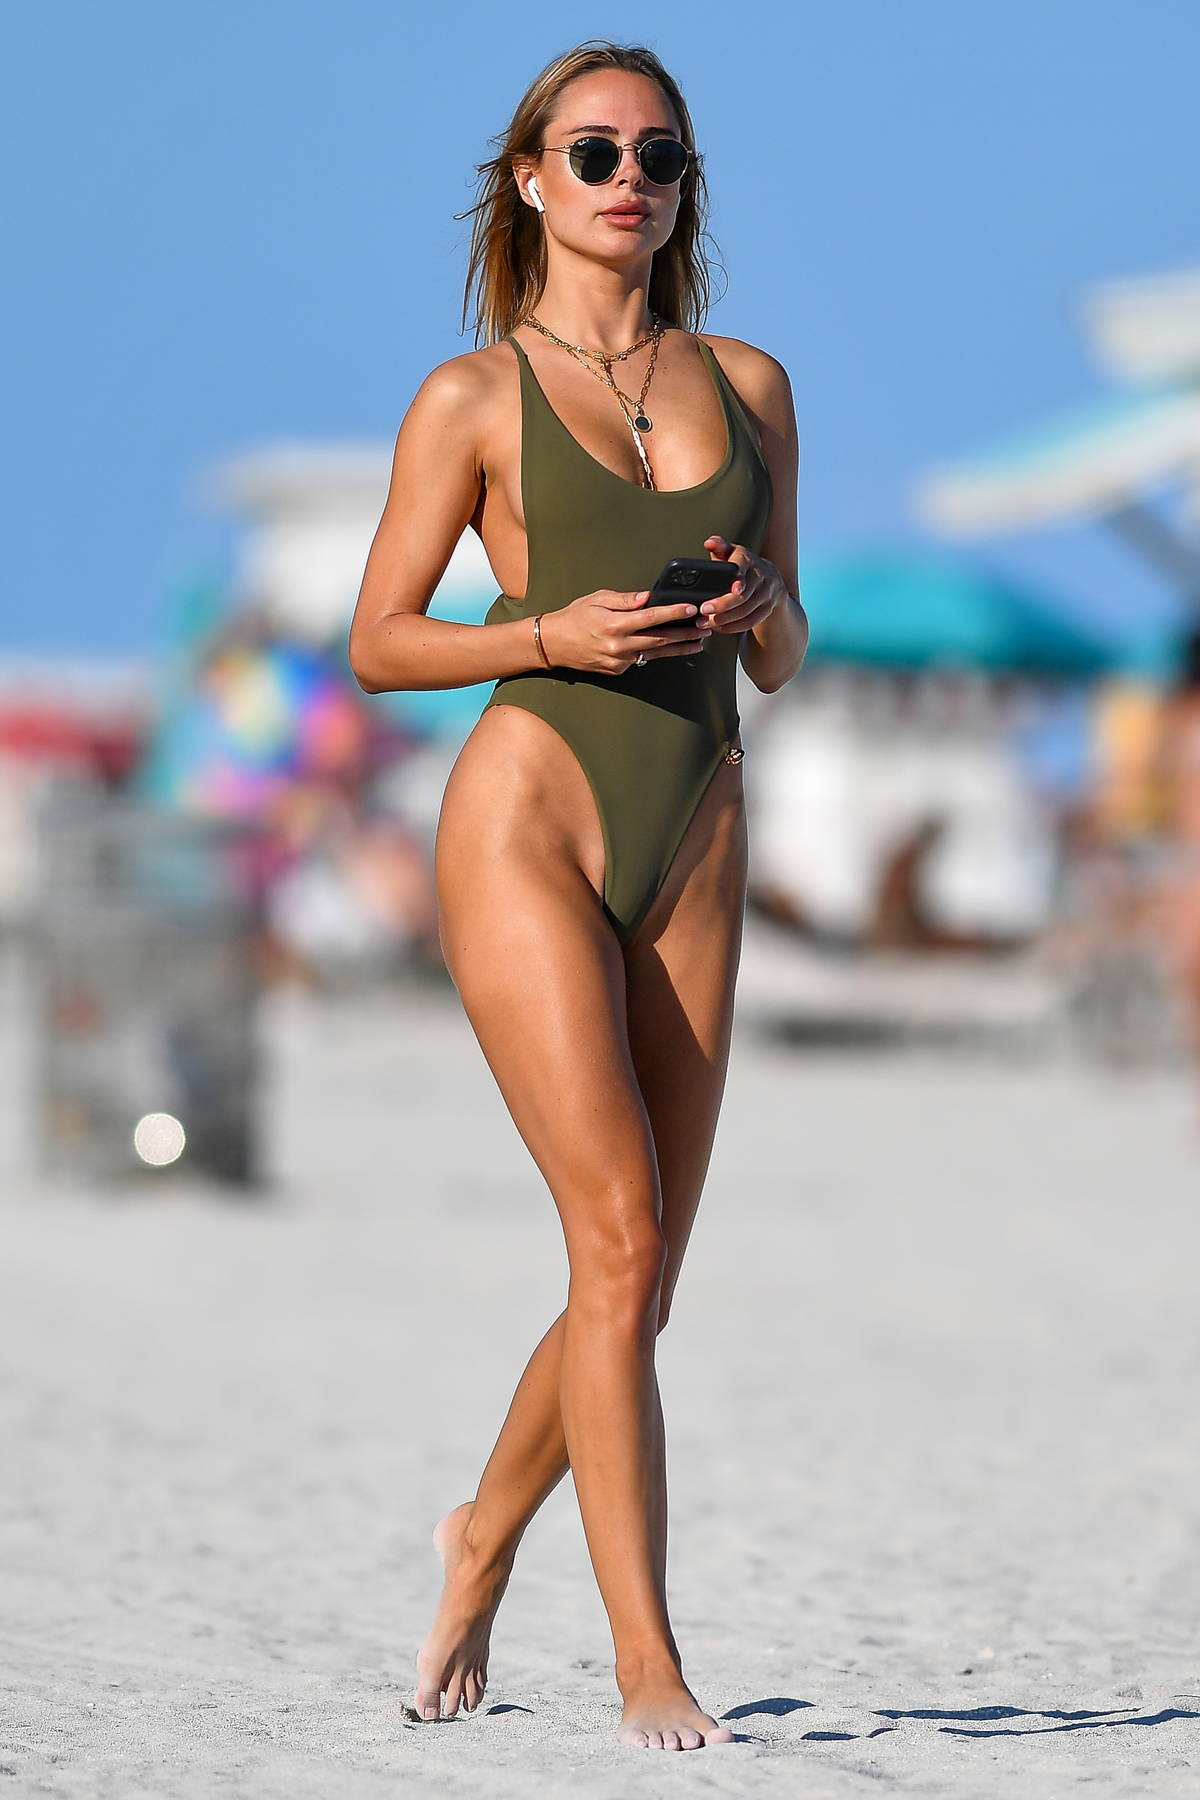 Kimberley Garner shows off her flawless figure in an olive green swimsuit in Miami Beach, Florida